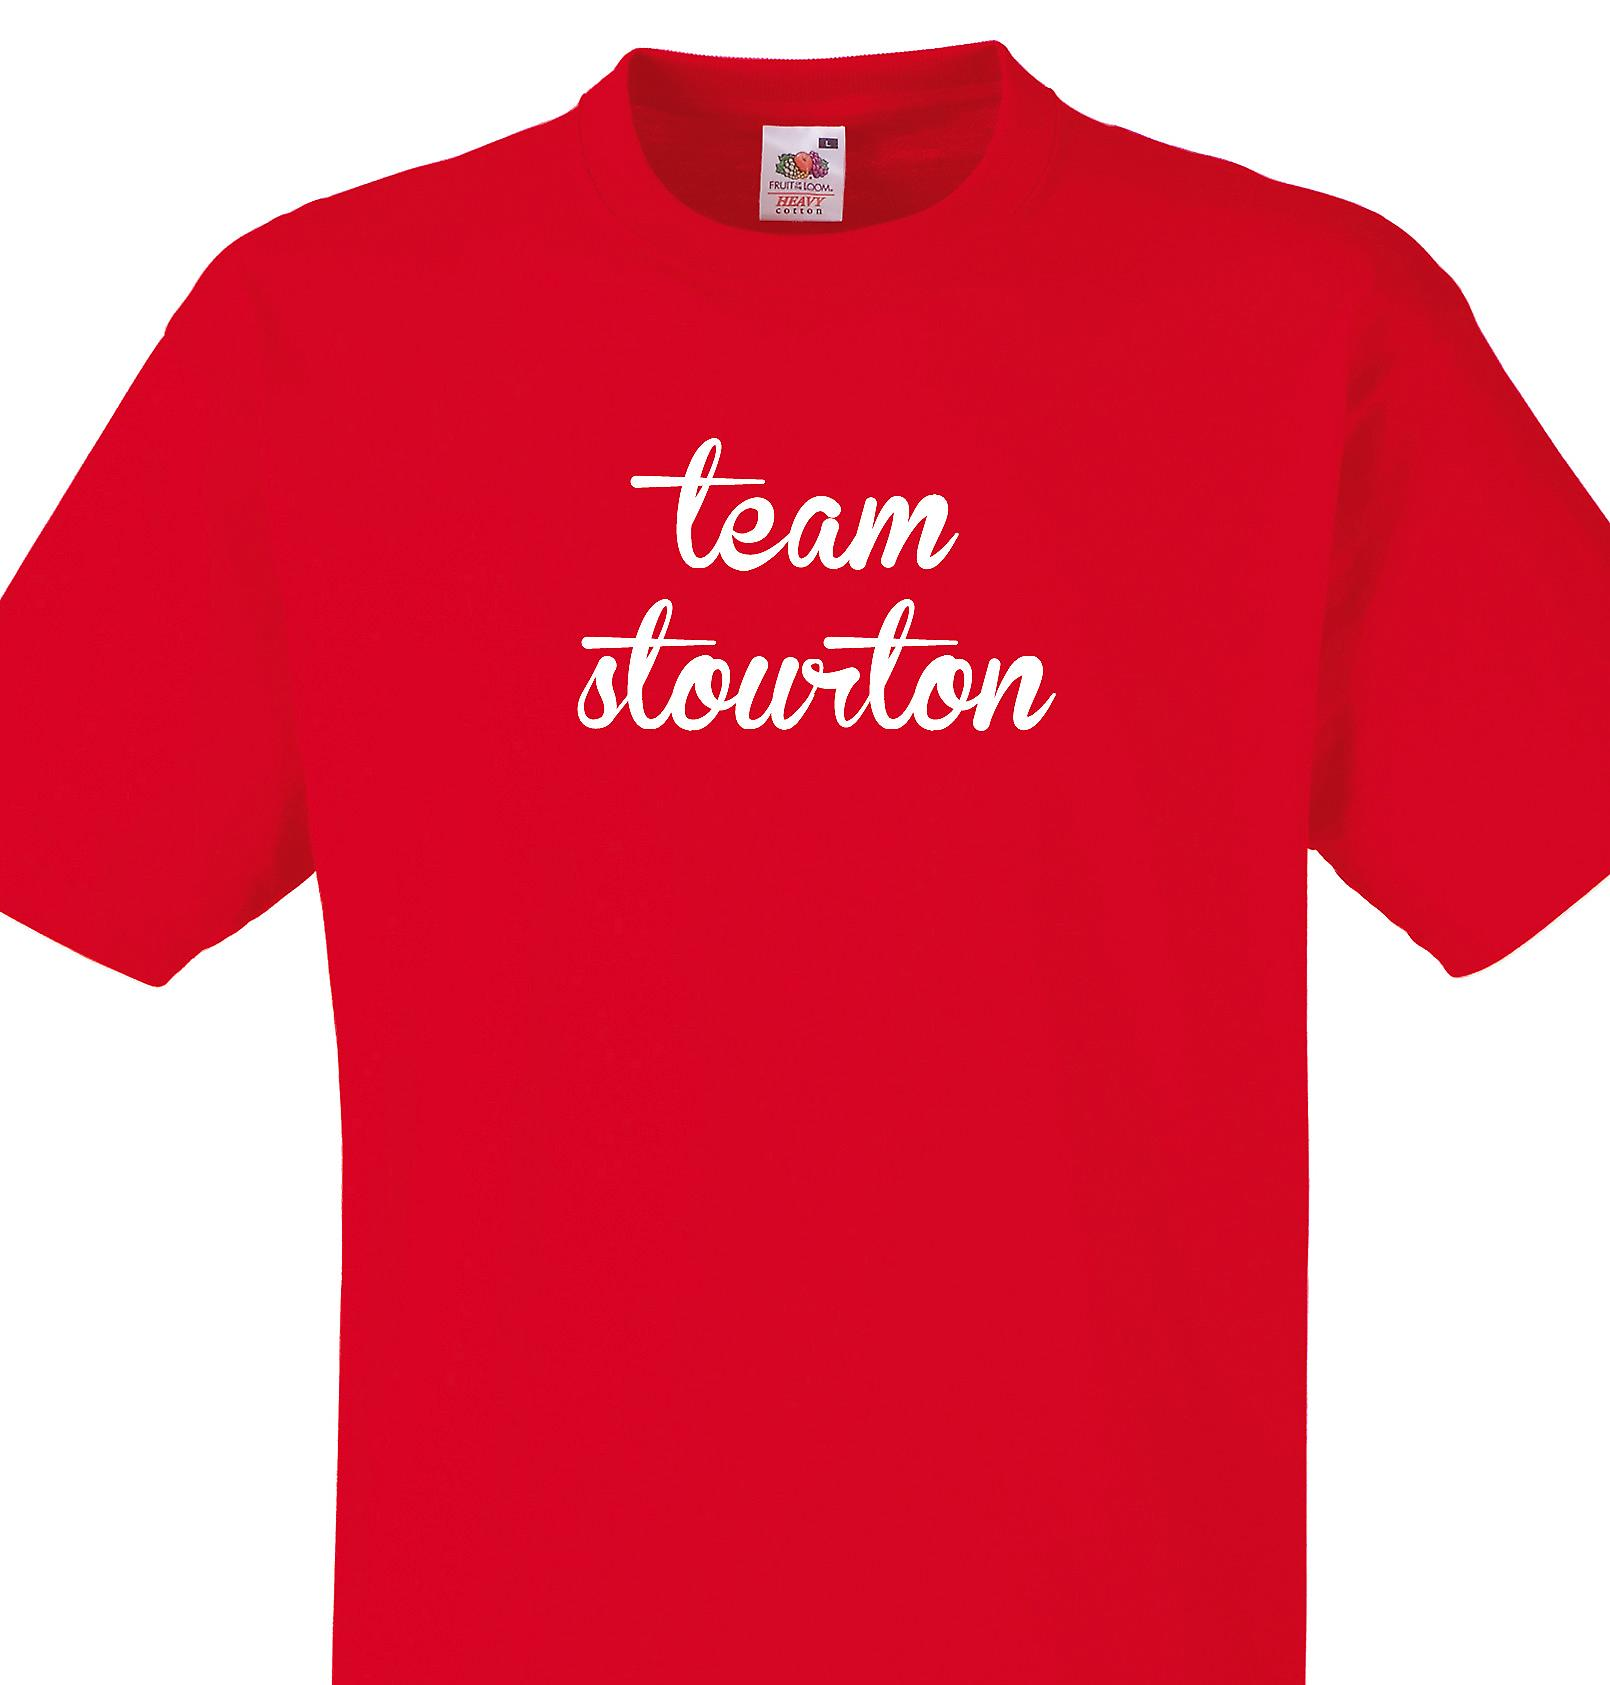 Team Stourton Red T shirt